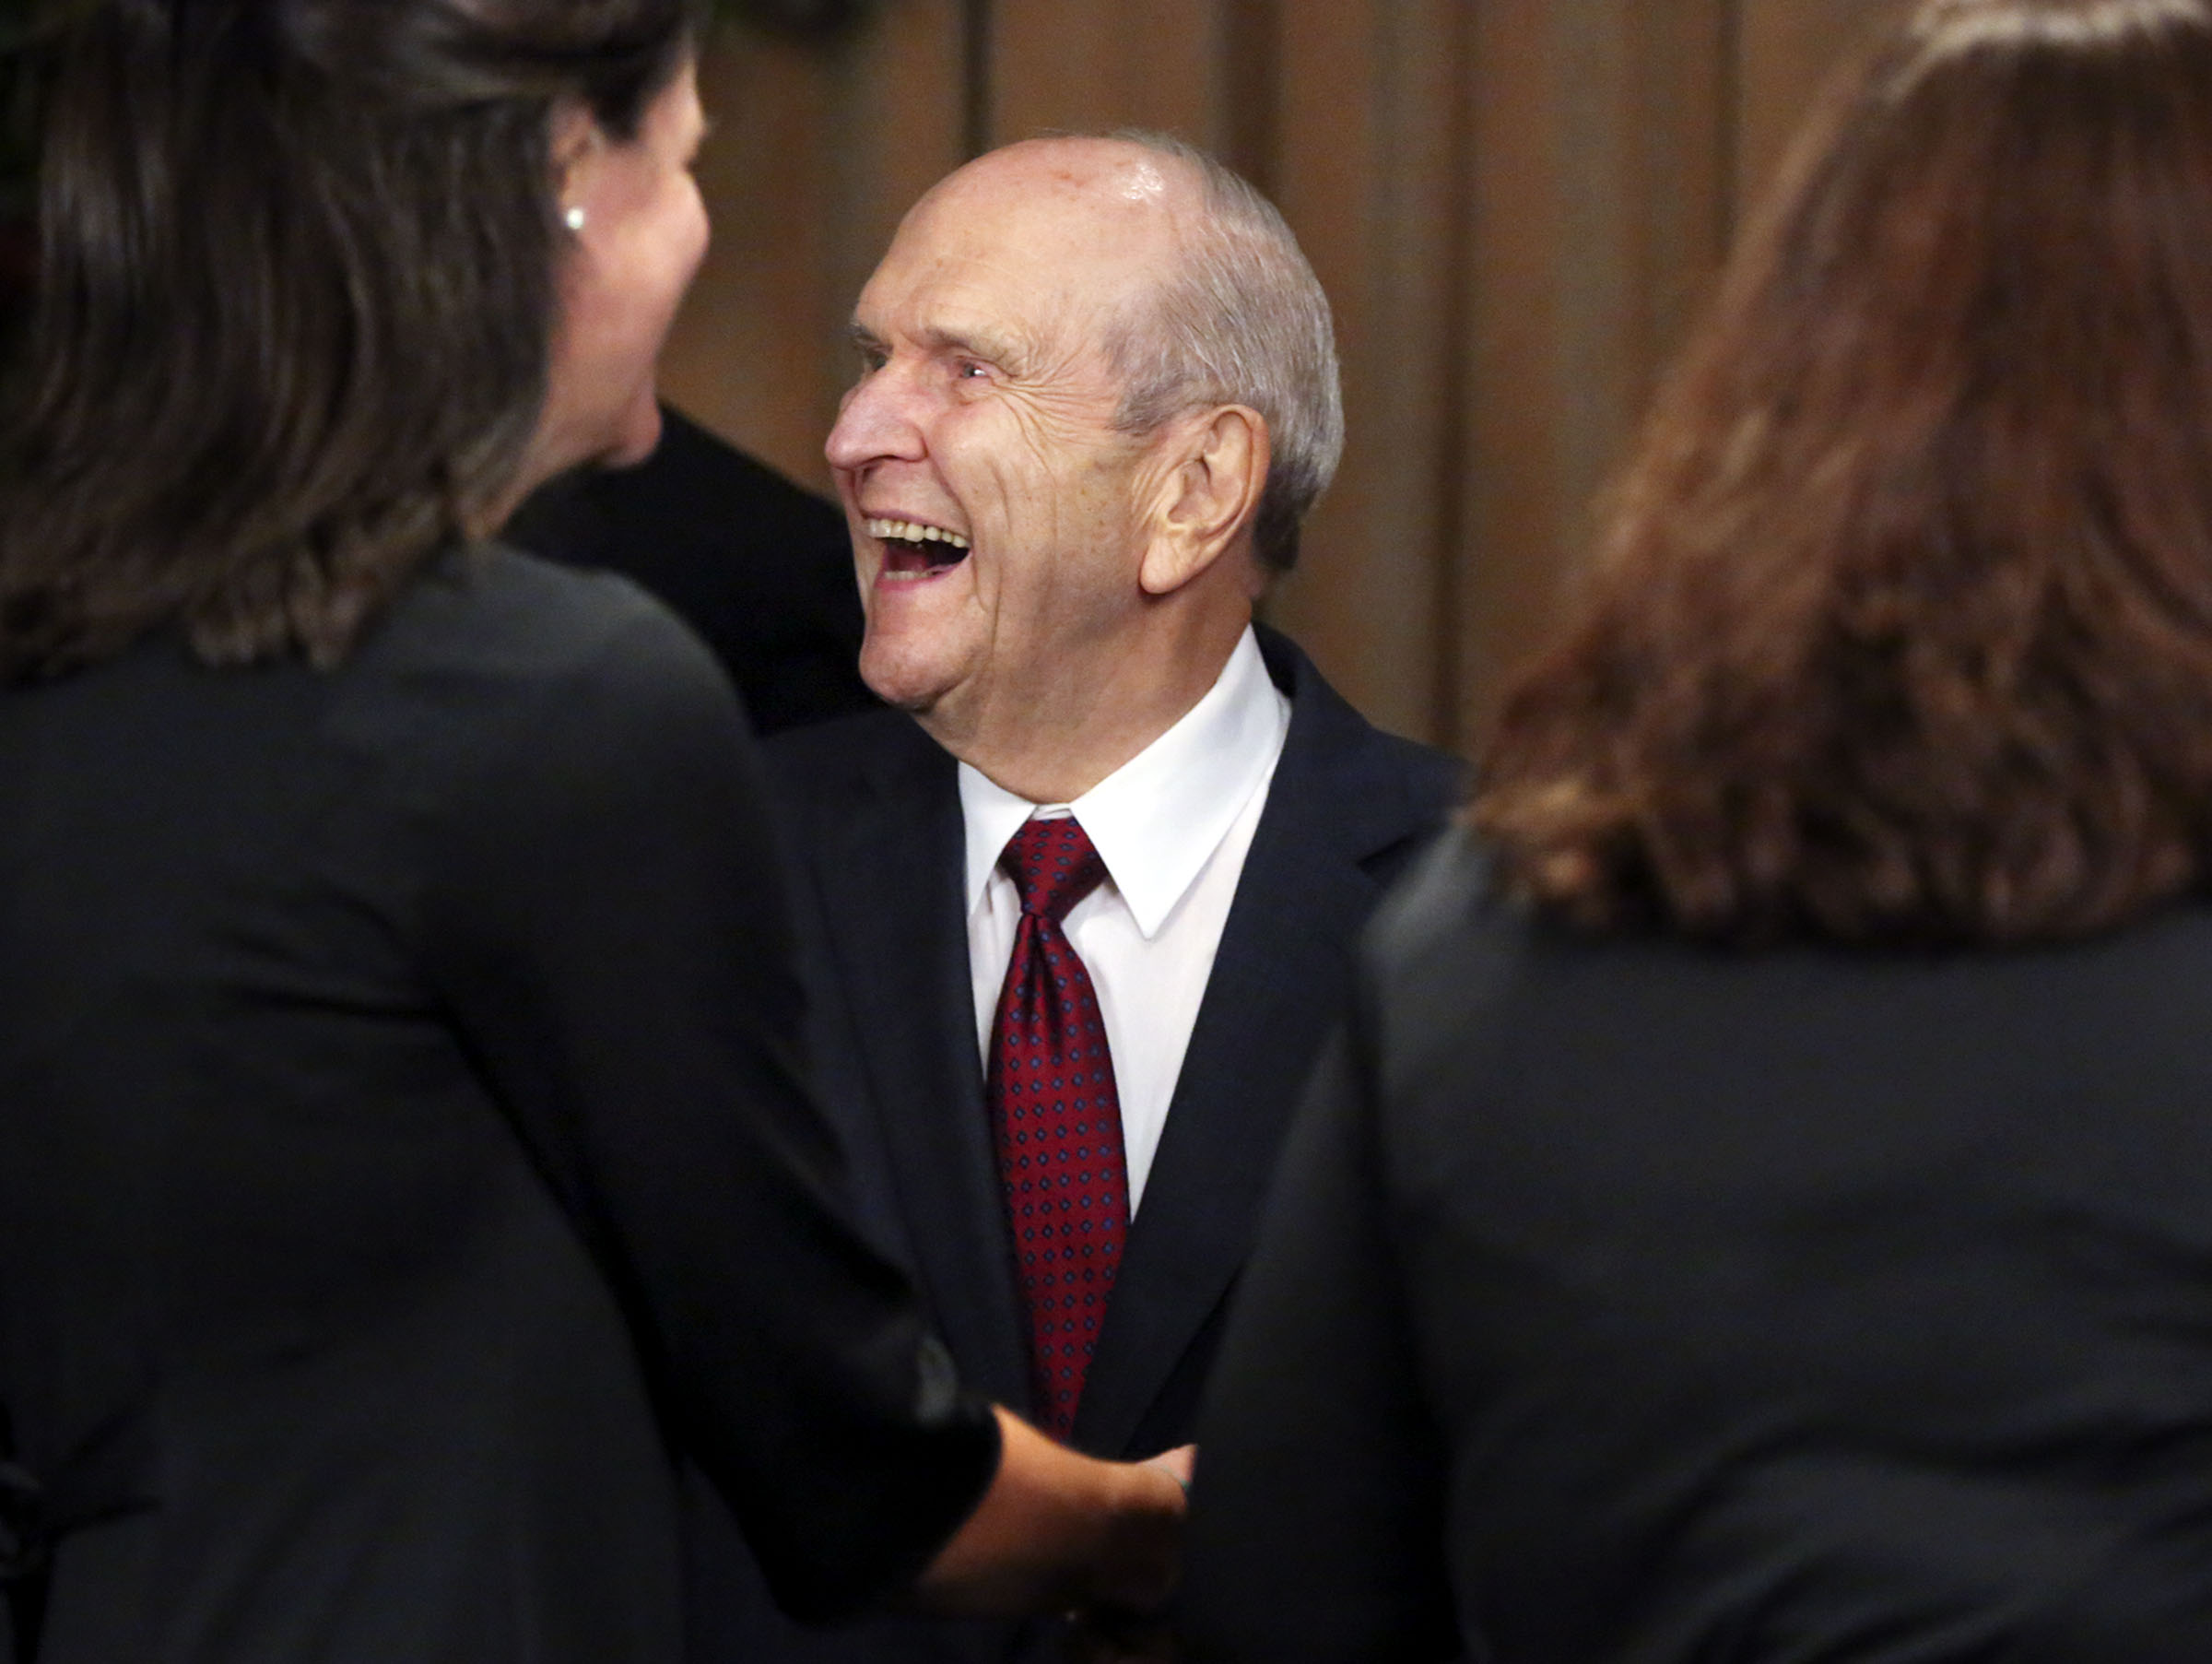 President Russell M. Nelson of The Church of Jesus Christ of Latter-day Saints meets with civic and religious leaders before speaking at Safeco Field in Seattle, Wash., on Saturday, Sept. 15, 2018.